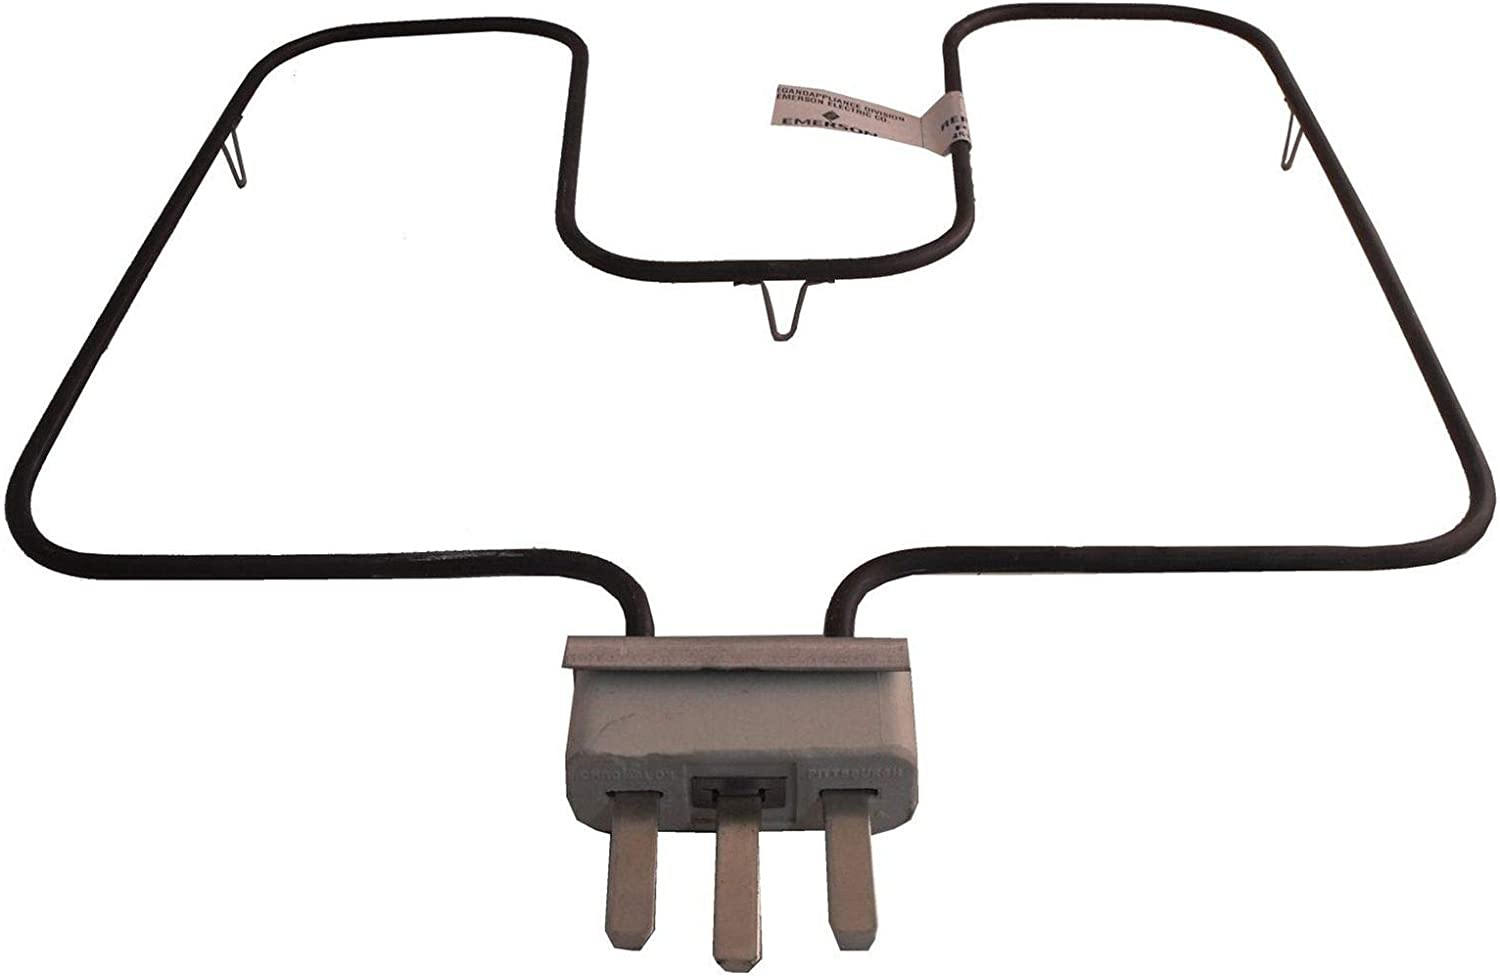 Edgewater Parts WB44X5019 Oven Range Bake Element Compatible With GE, Hotpoint, Camco, Kenmore, Replaces 260968, AP2624568, CH44X5019, RP980